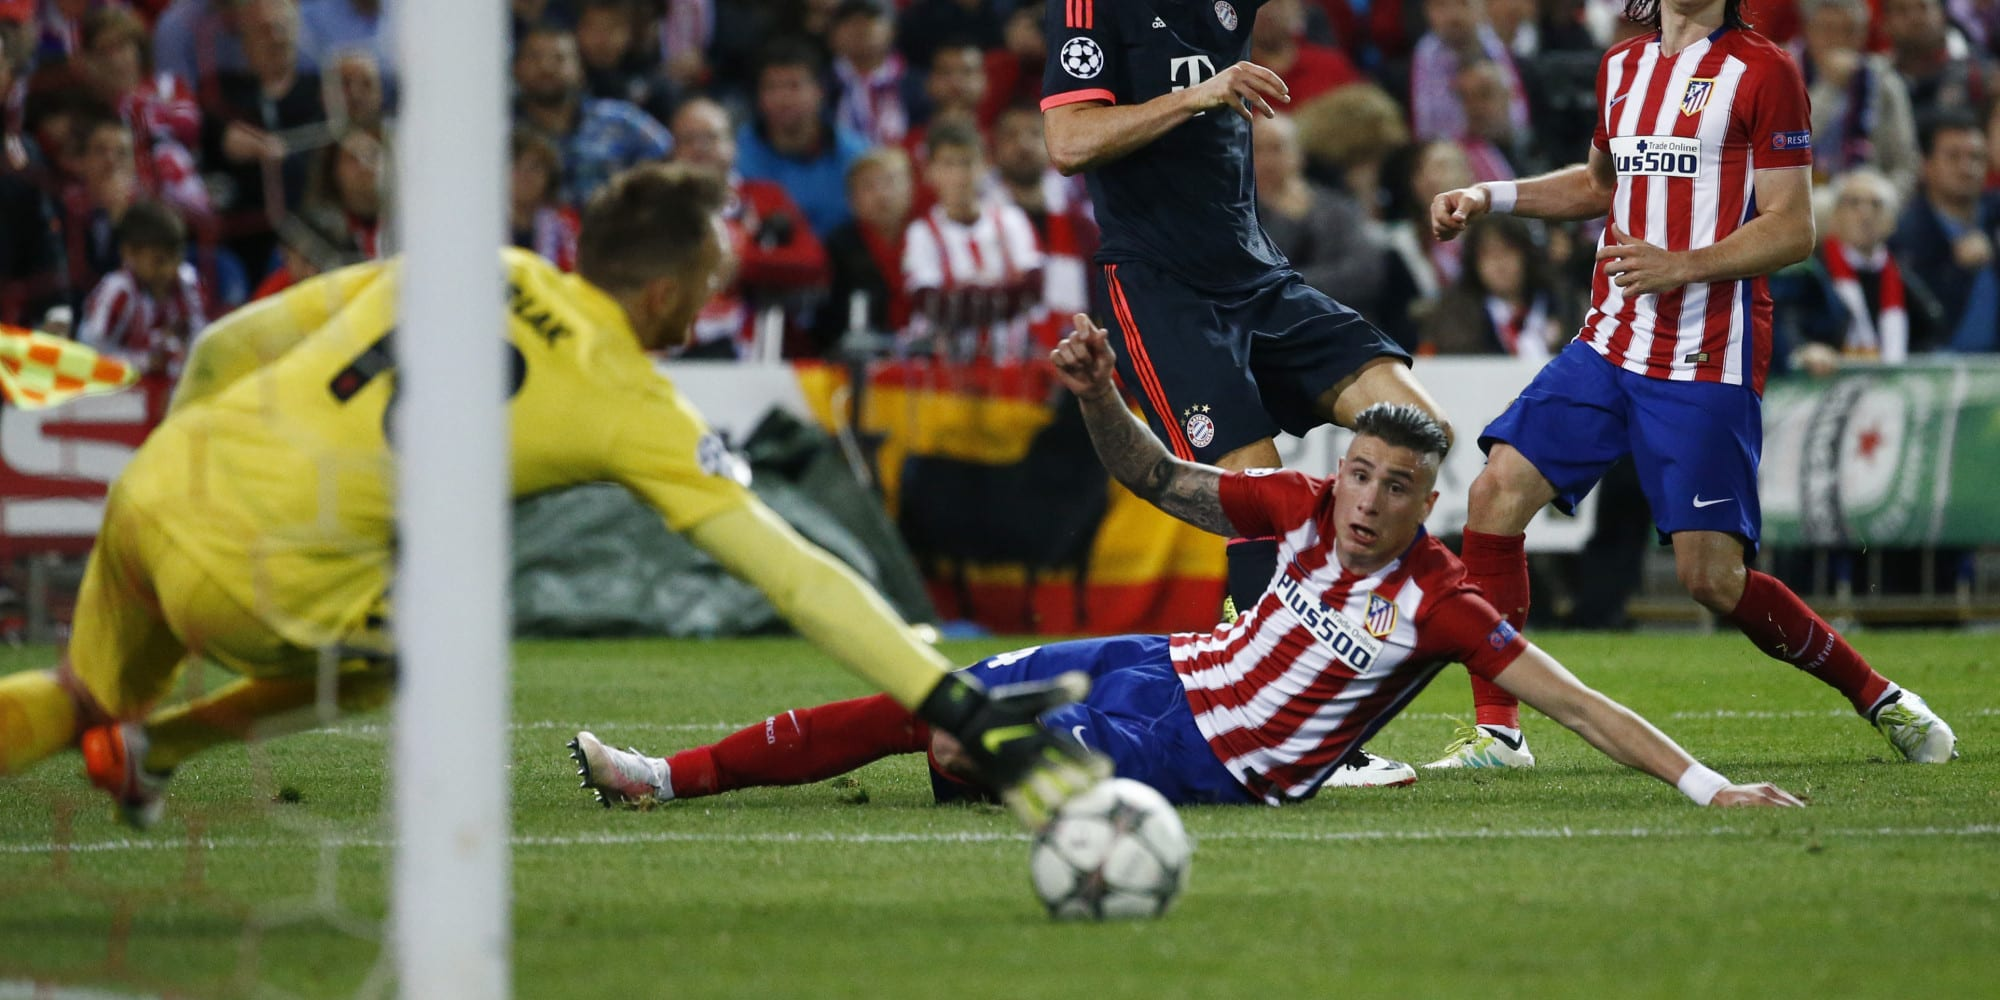 Atletico Madrid v Bayern Munich - UEFA Champions League Semi Final First Leg